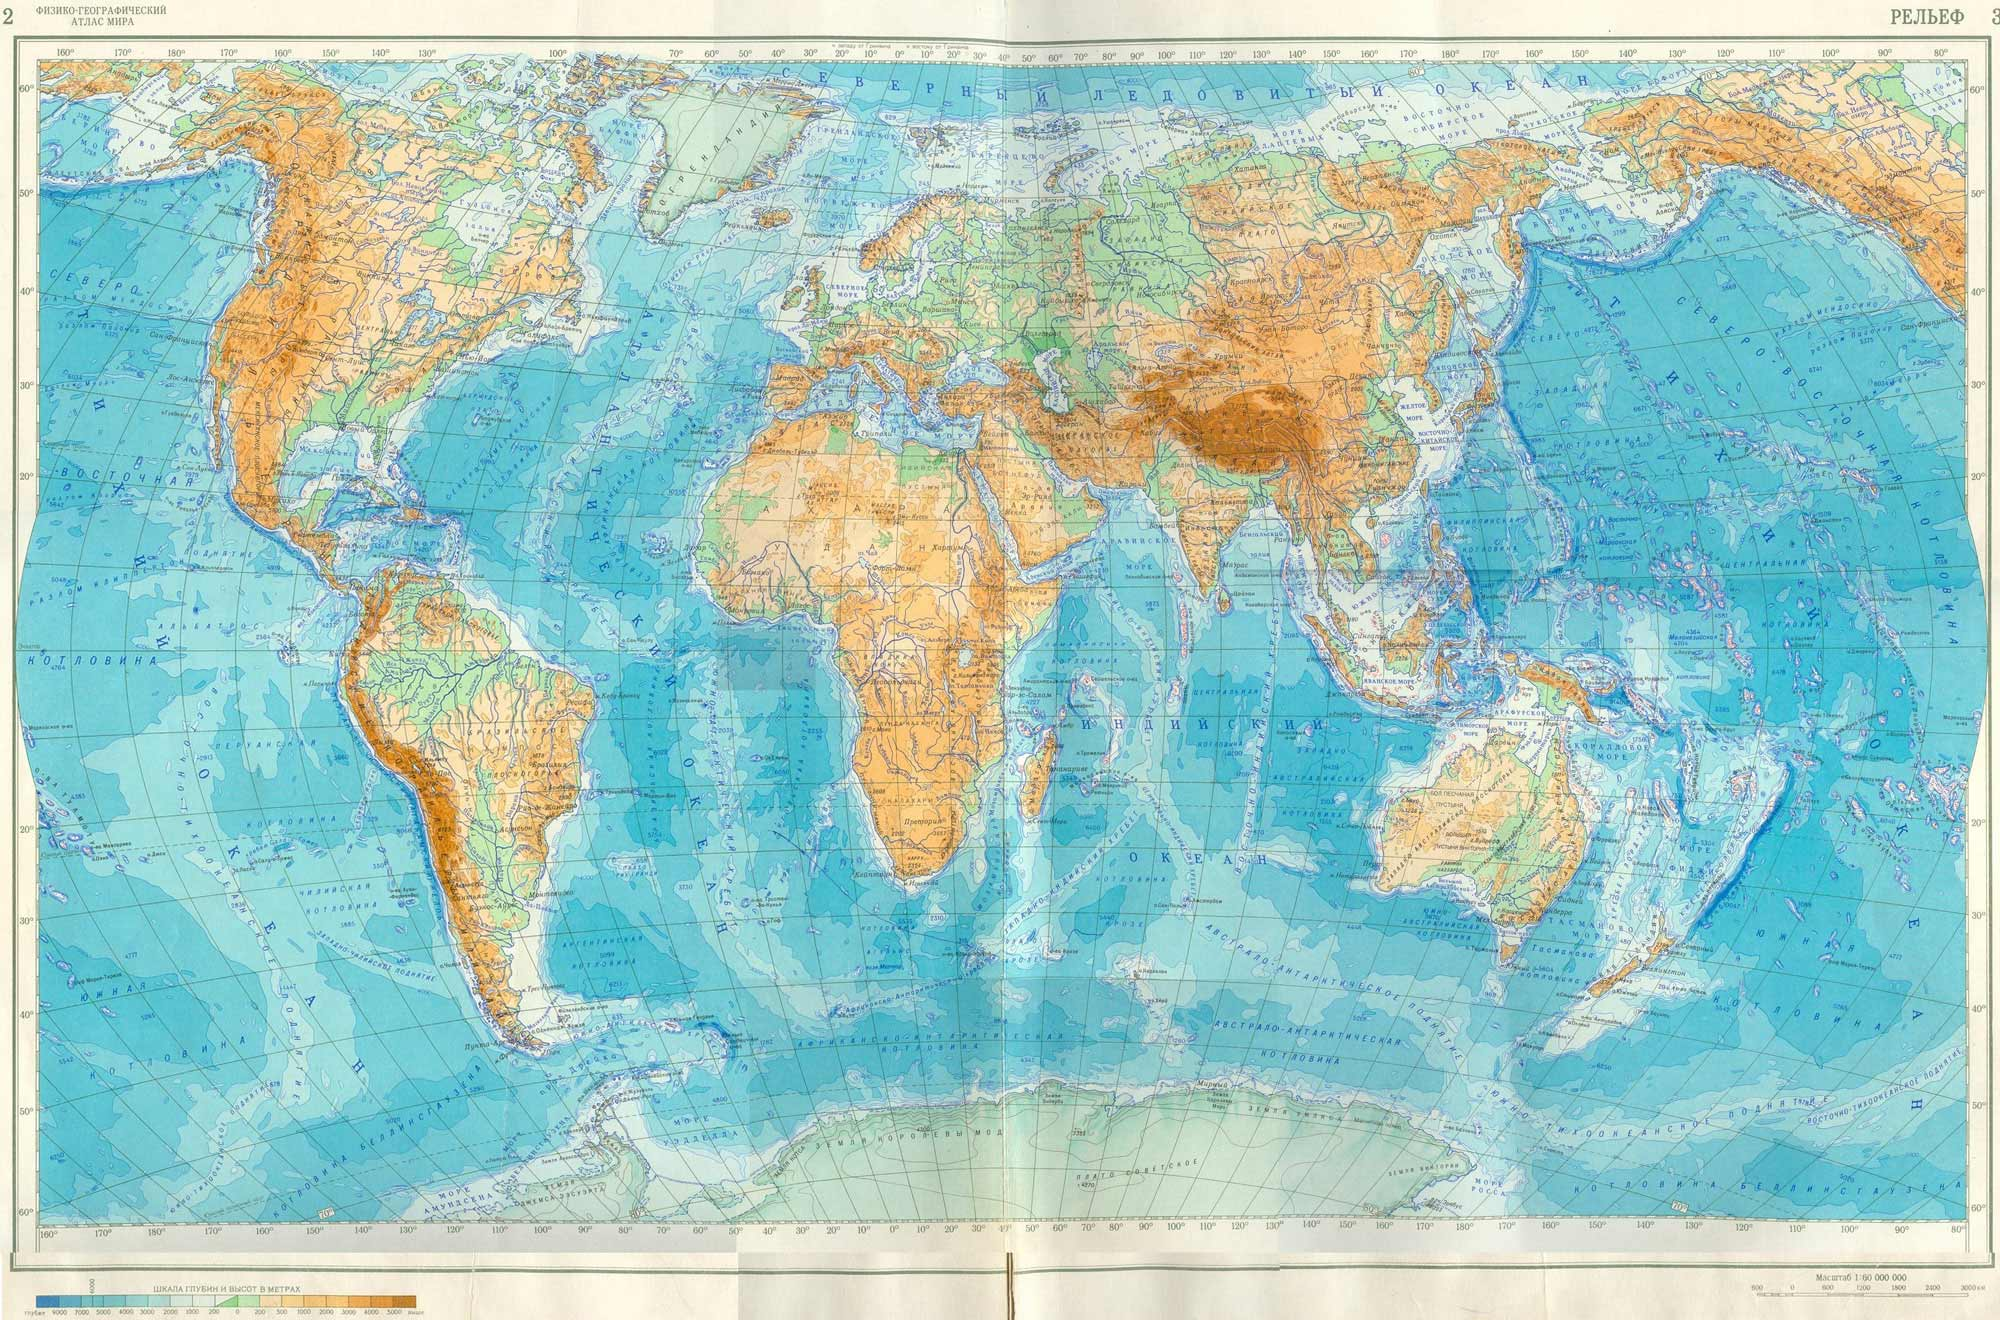 Physical and geographical world atlas (1964)